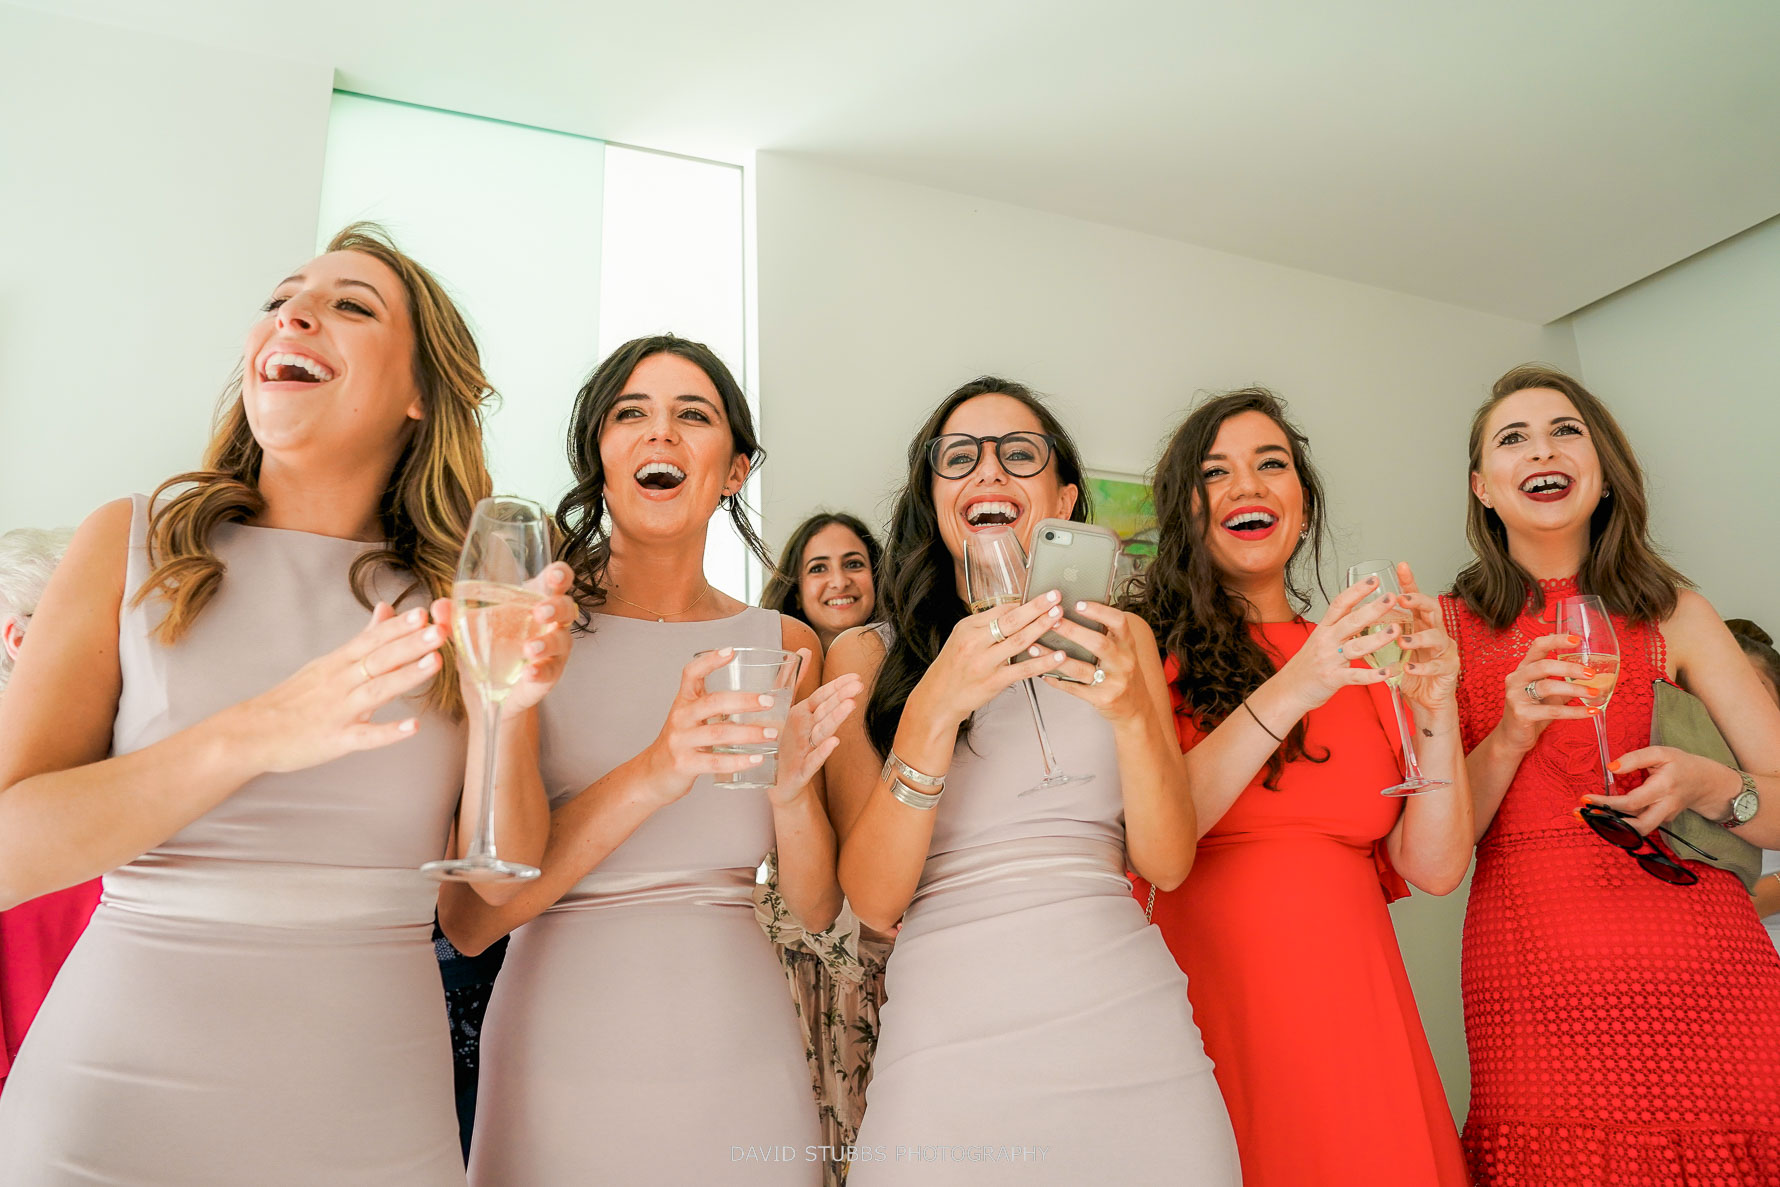 girls getting really excited when the groom enters